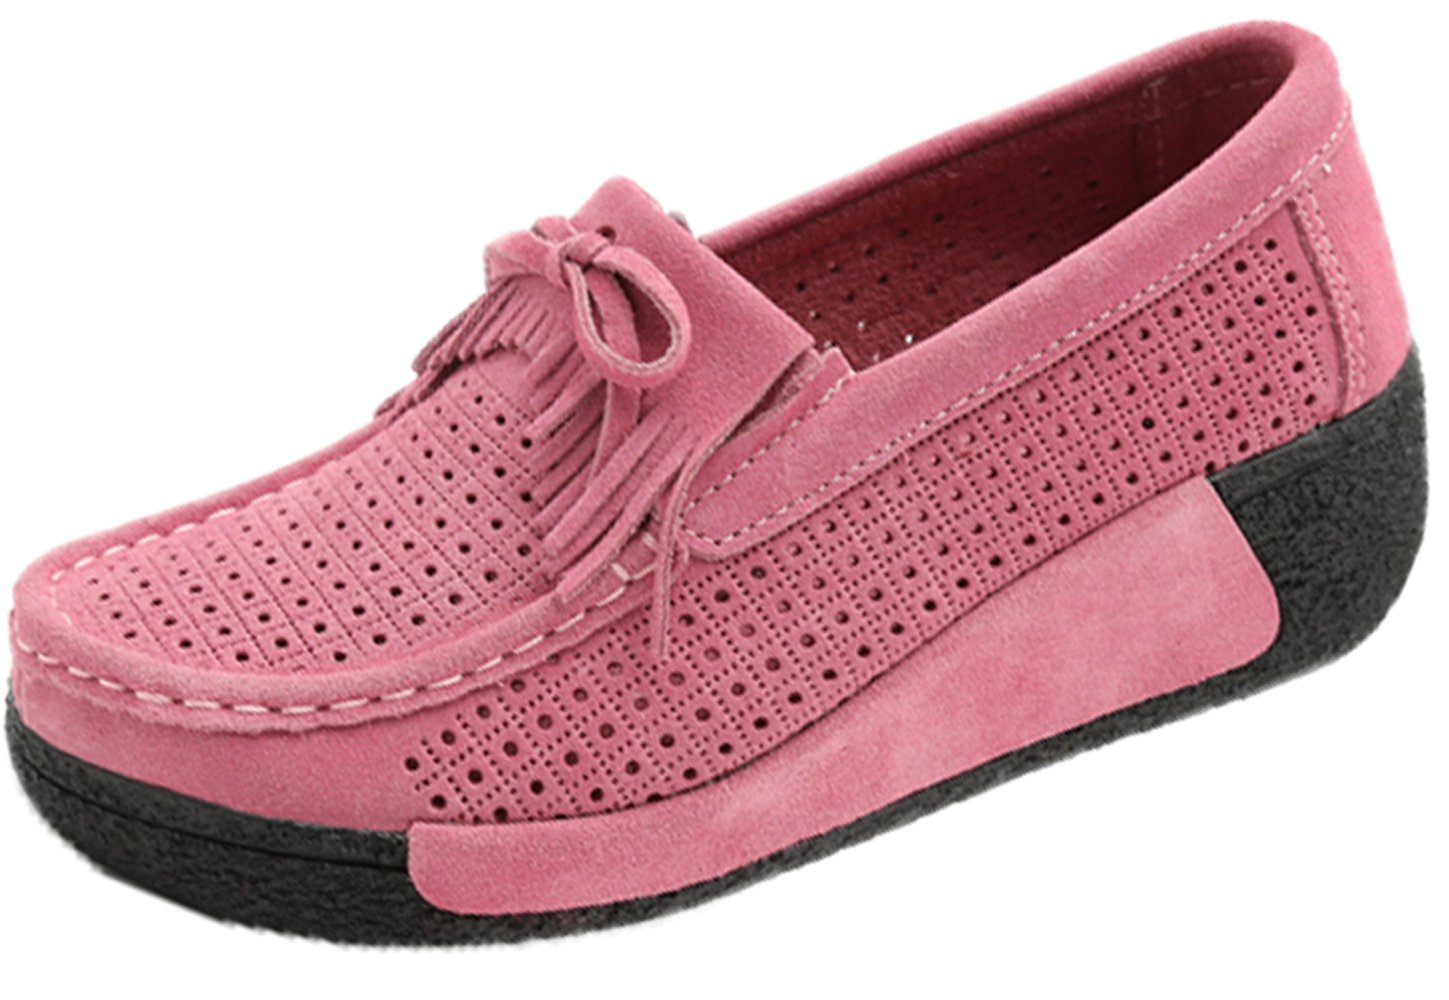 YZHYXS Women Platform Shoes Slip On Sneakers Comfort Flats Wedge Casual Shoes (1319-1pink 40)